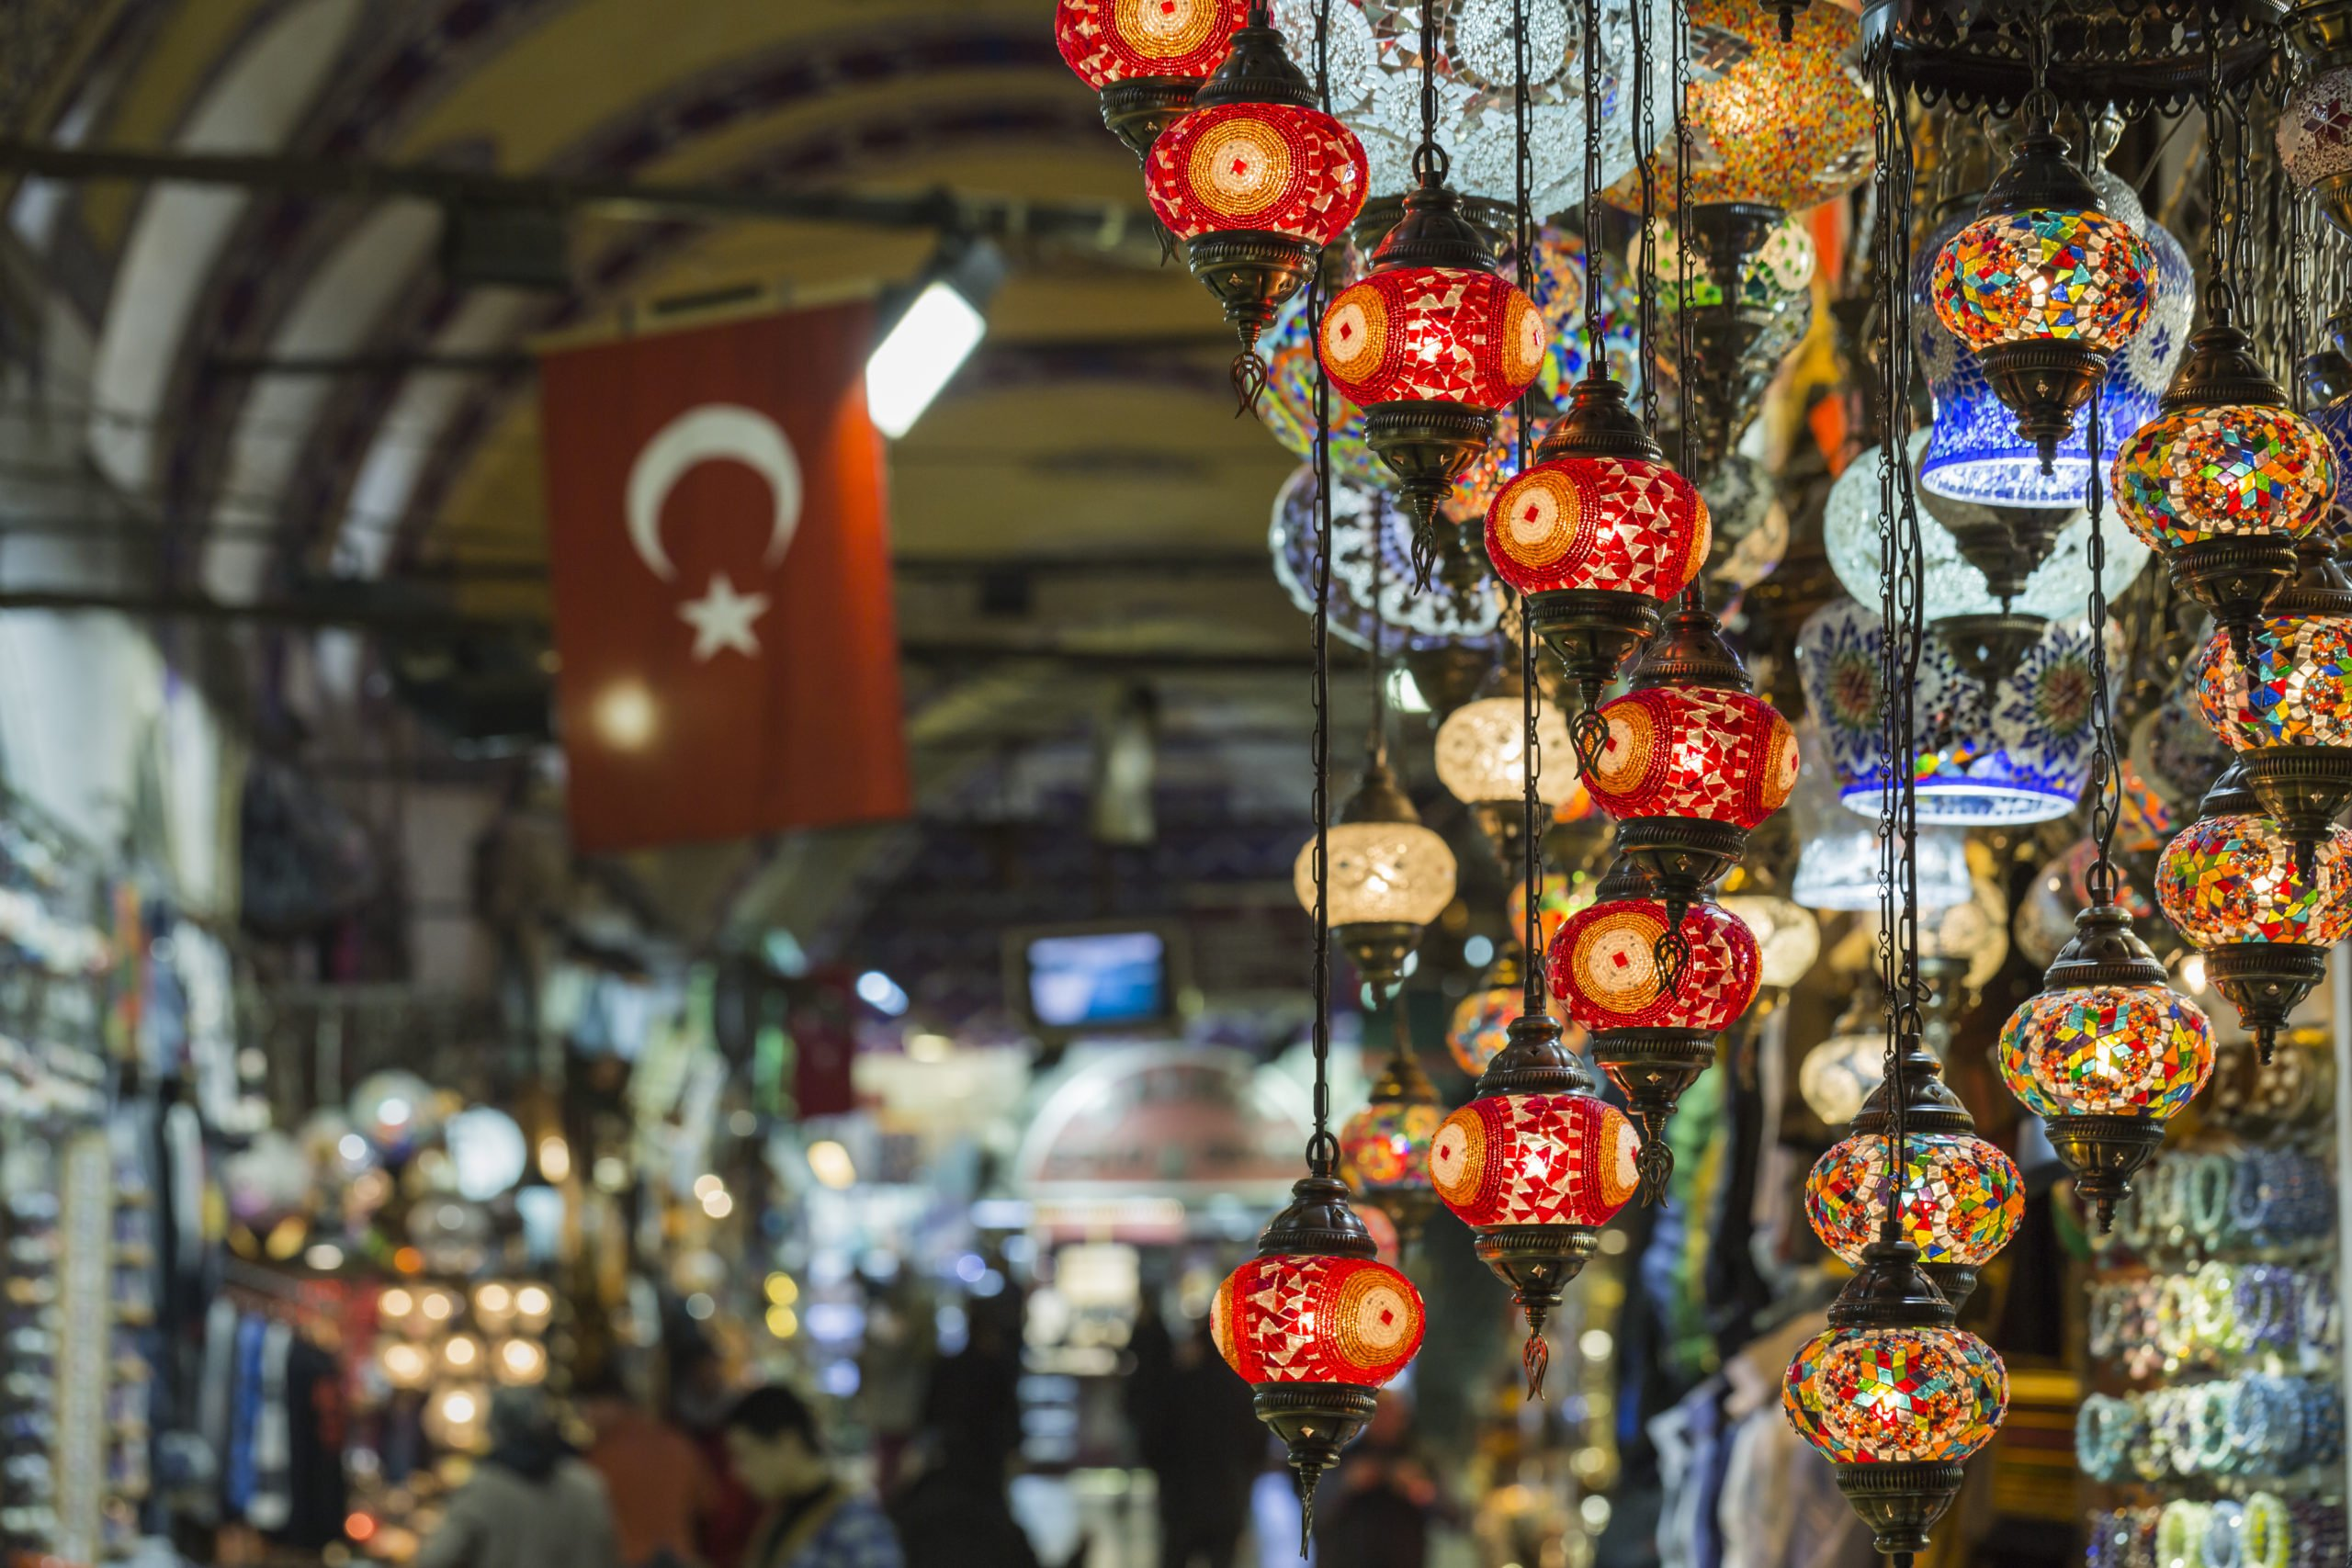 Complete Your Day With A Visit Of The Grand Bazaar During The Insider Istanbul Old City Tour